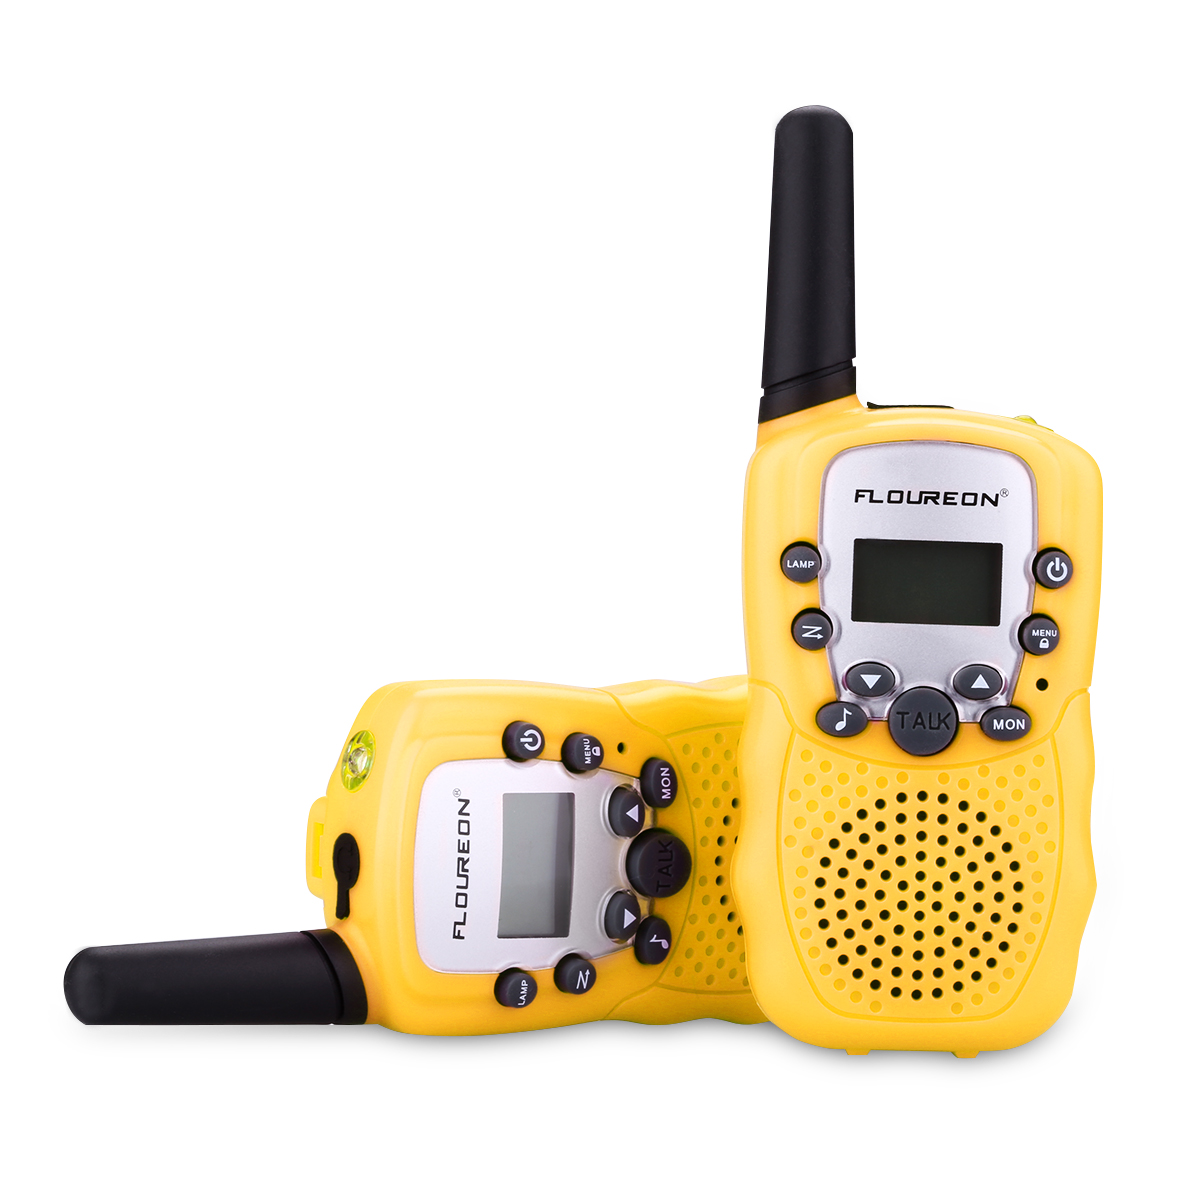 Walkie Talkies Two Way Radios, FLOUREON 22 Channel 3000M (MAX 5000M open field) UHF Outdoor Long Range Handheld Talkies Talky for NERF Kids Adults